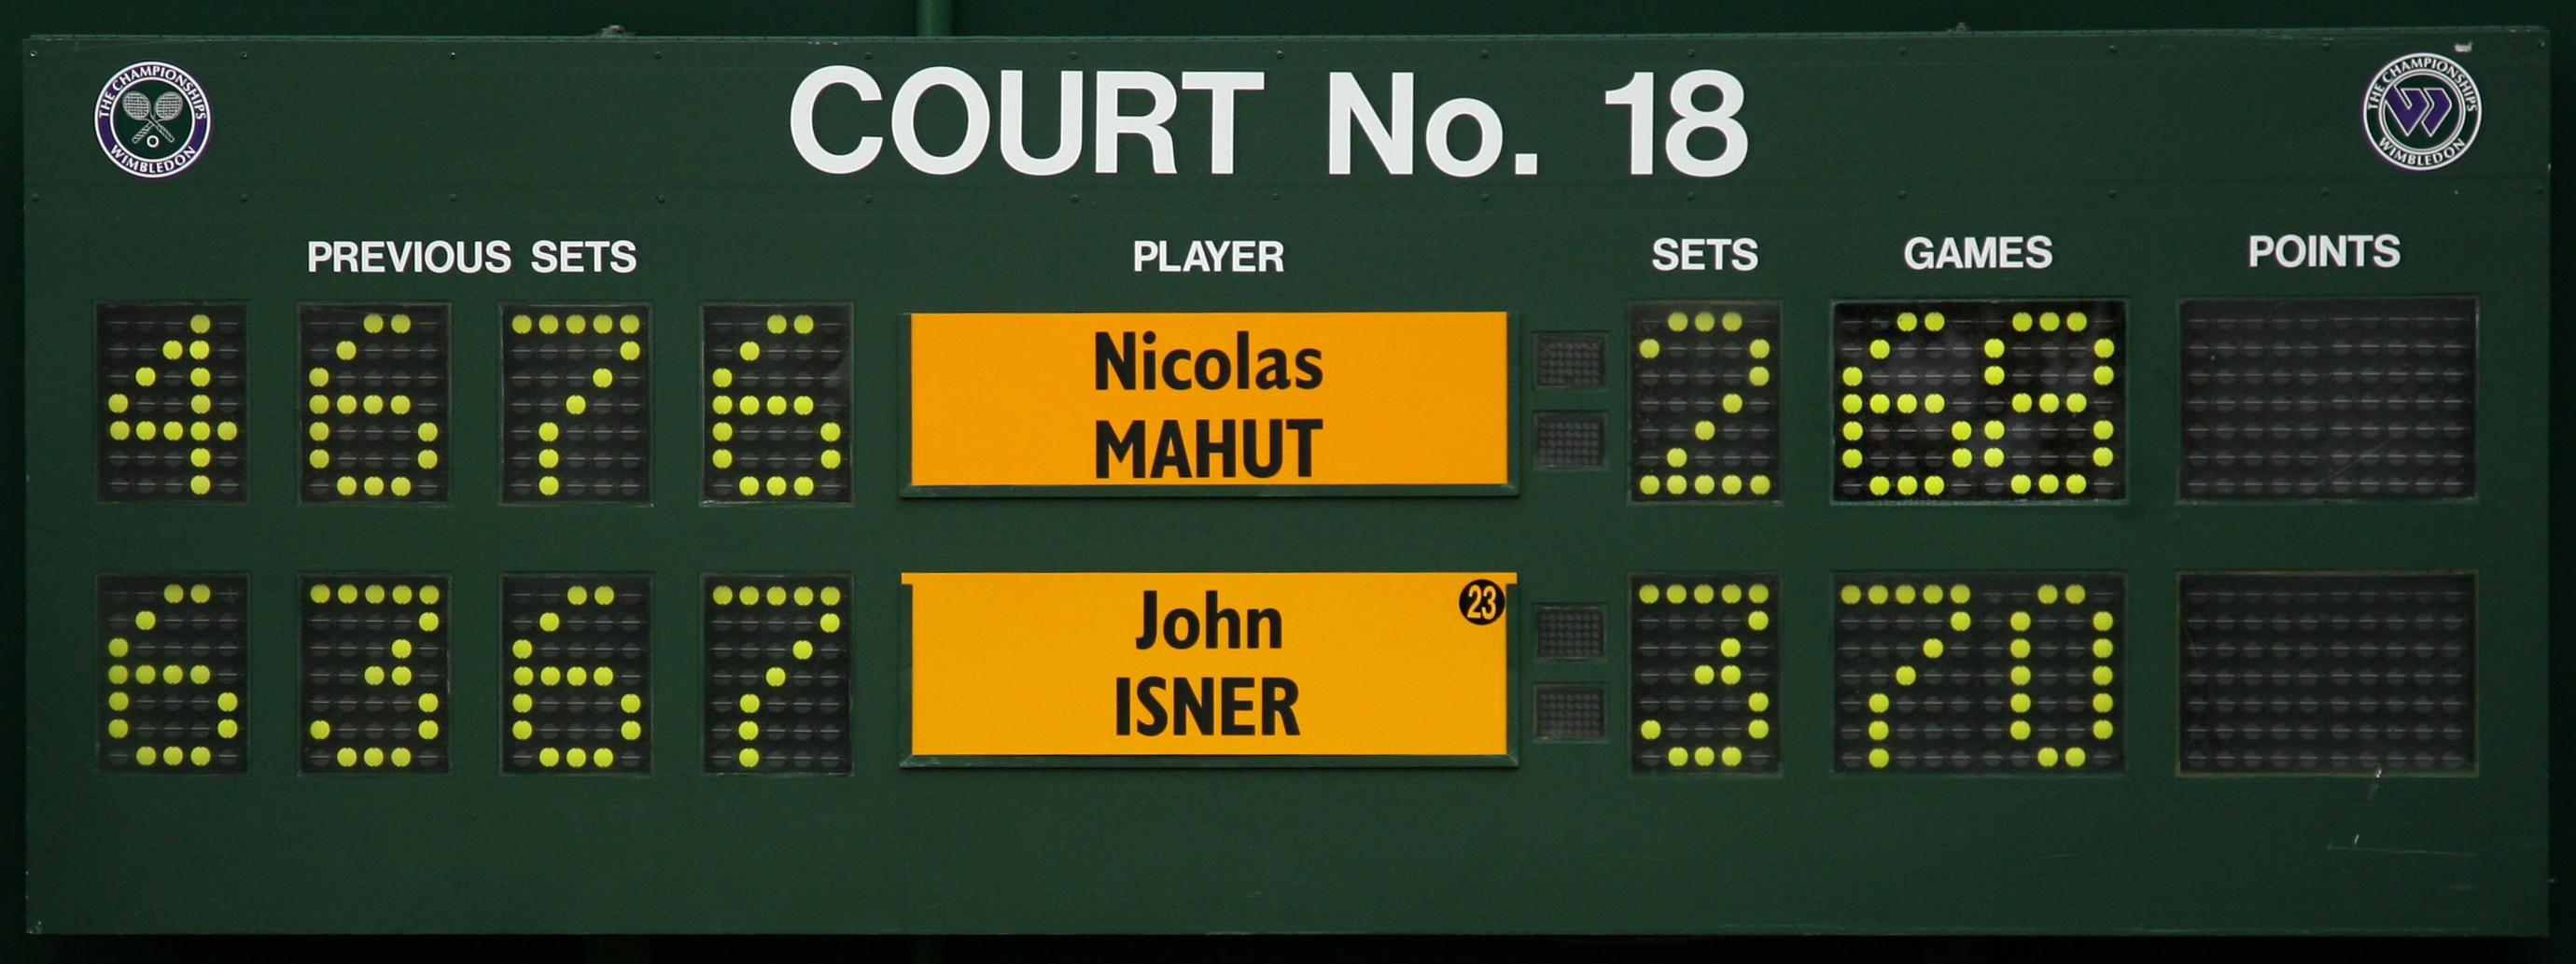 The scoreboard at Wimbledon needed to be reset as Isner played the longest ever tennis match against Nicolas Mahut